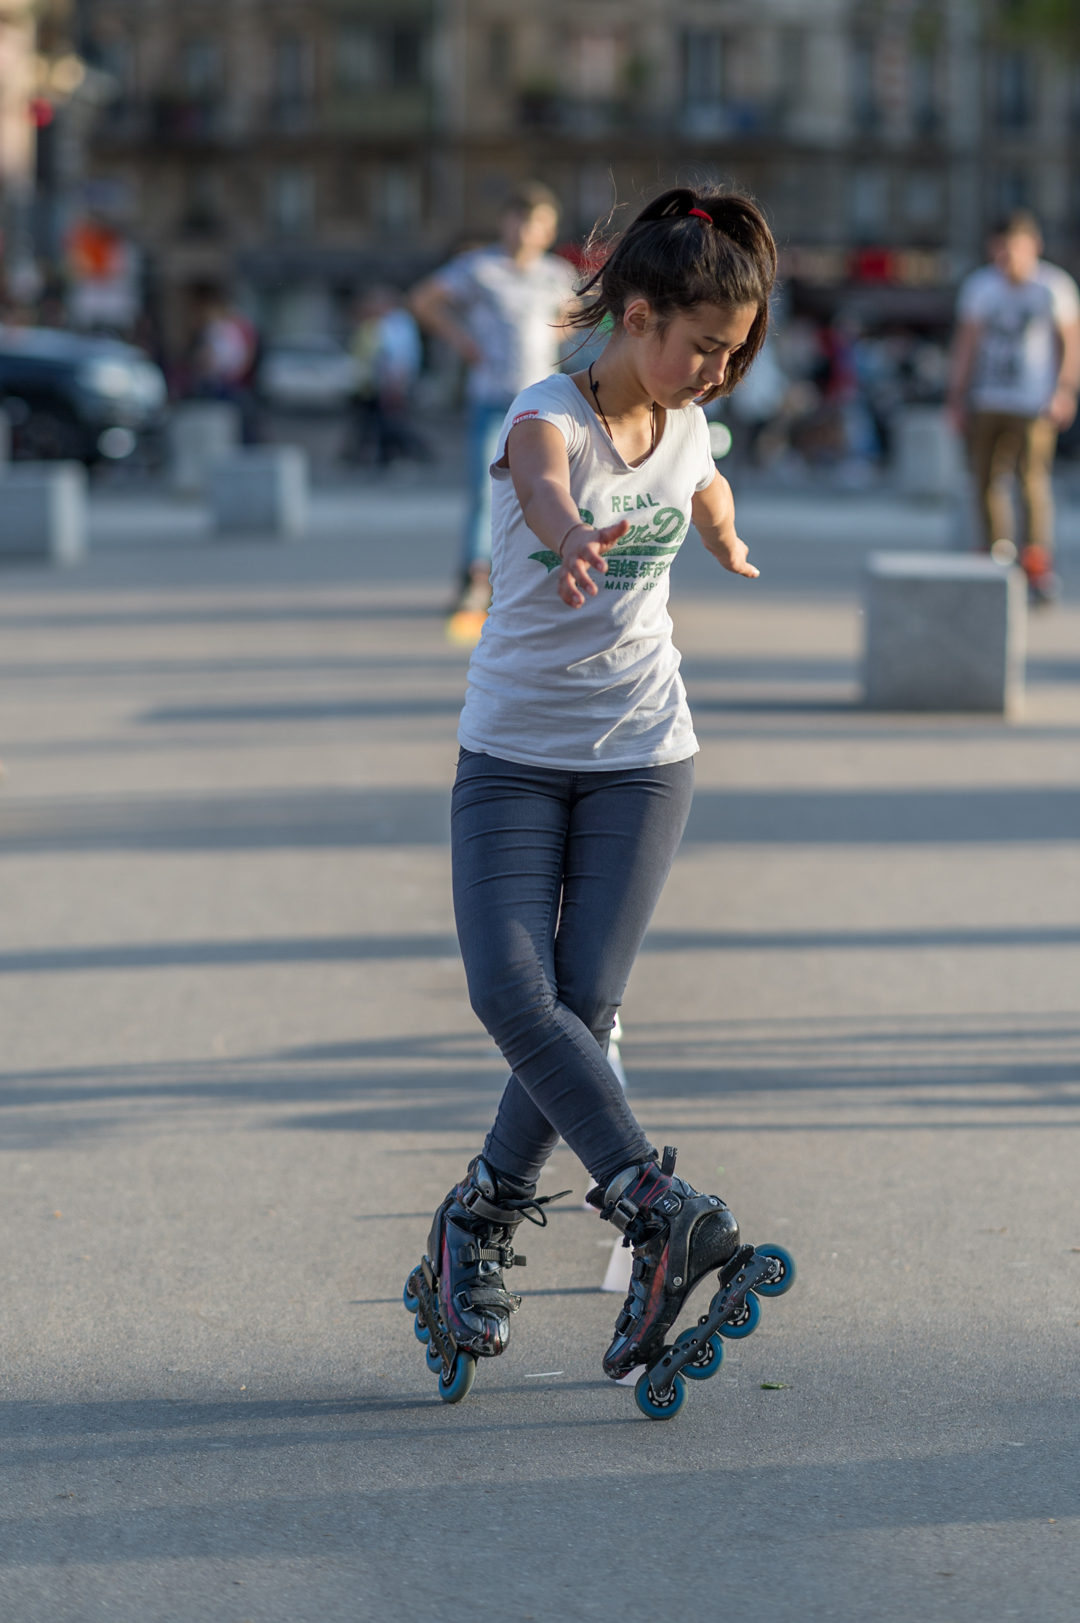 201807240854th152_2011280962336_paris skater - 2044.1134.jpg